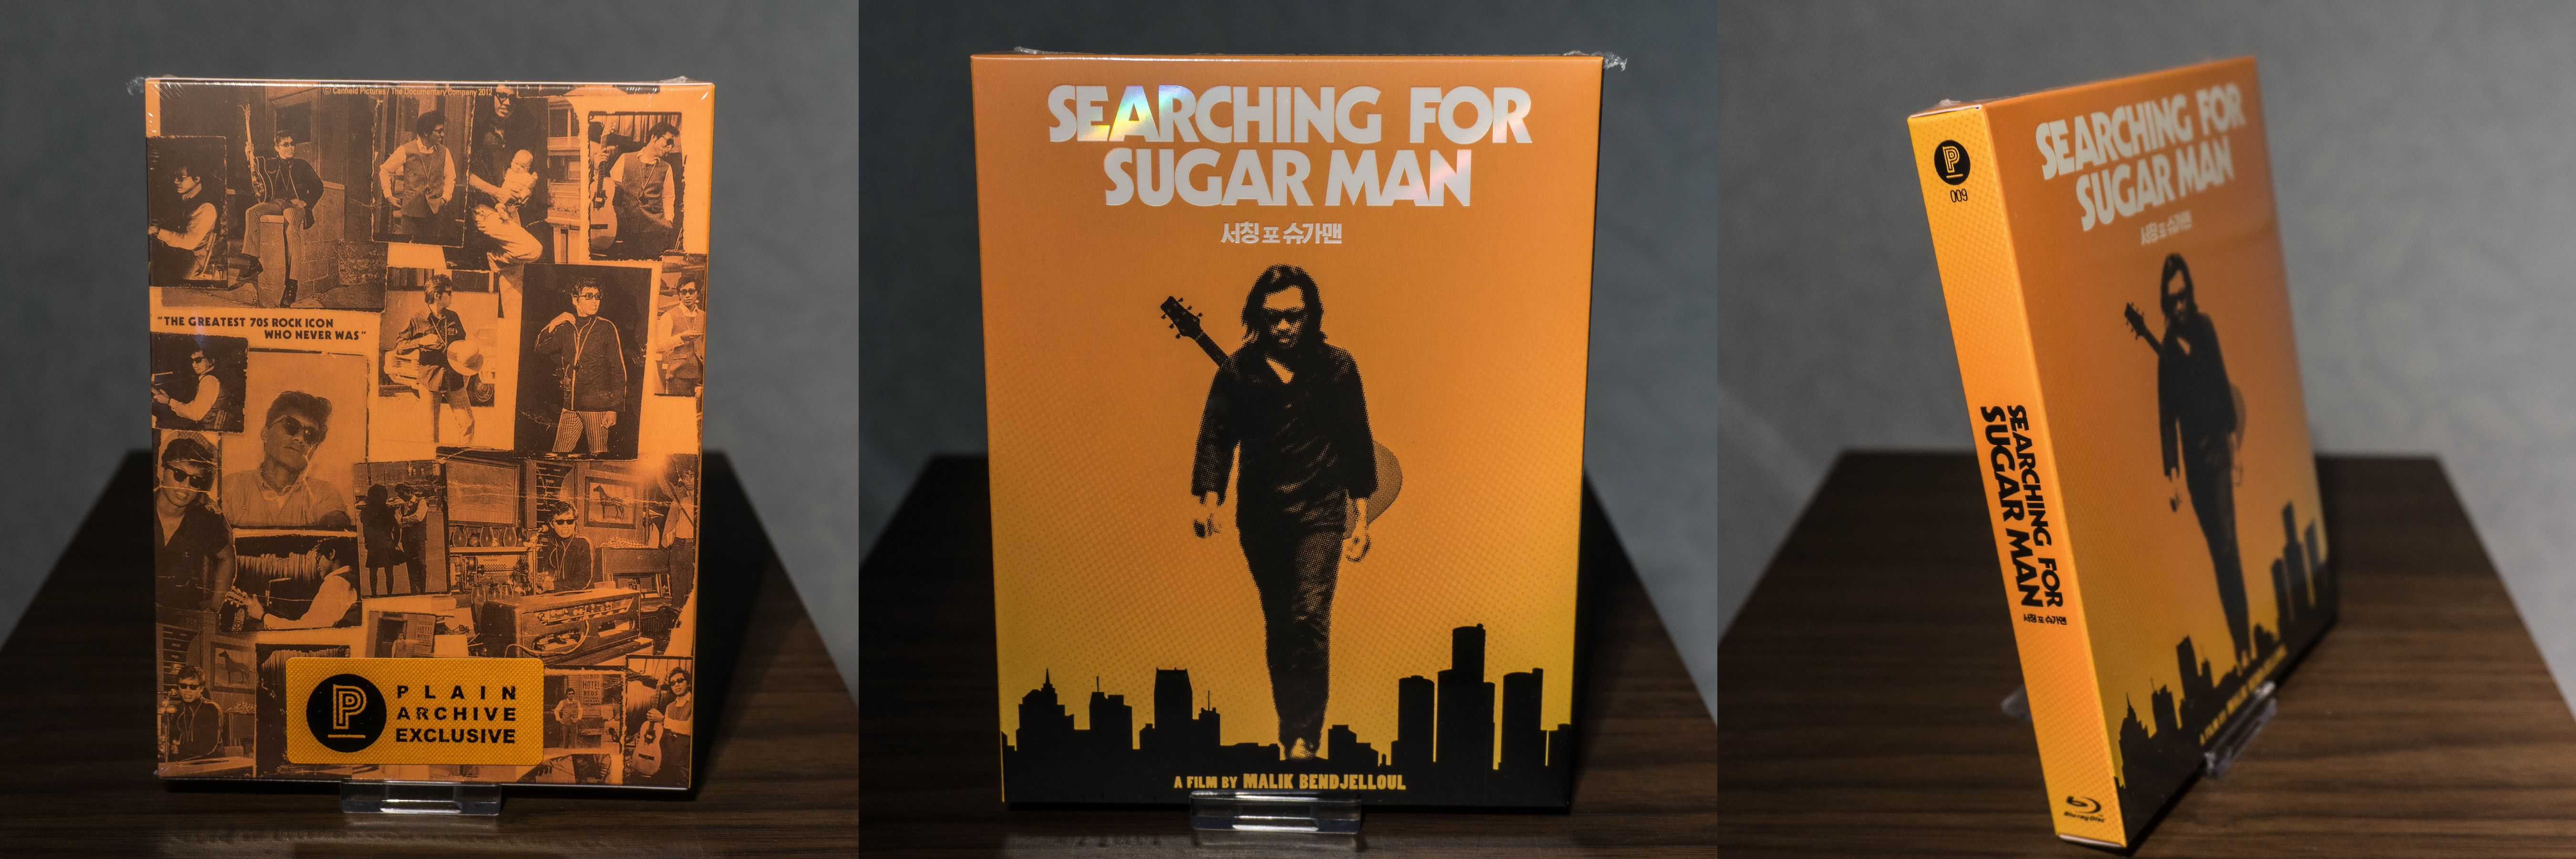 a review of searching for sugar man a 2012 swedish british documentary film by bendjelloul Film review – searching for sugar man (2012) 4 stars a documentary about the mysterious rodriguez directed by swedish-british filmmaker malik bendjelloul.